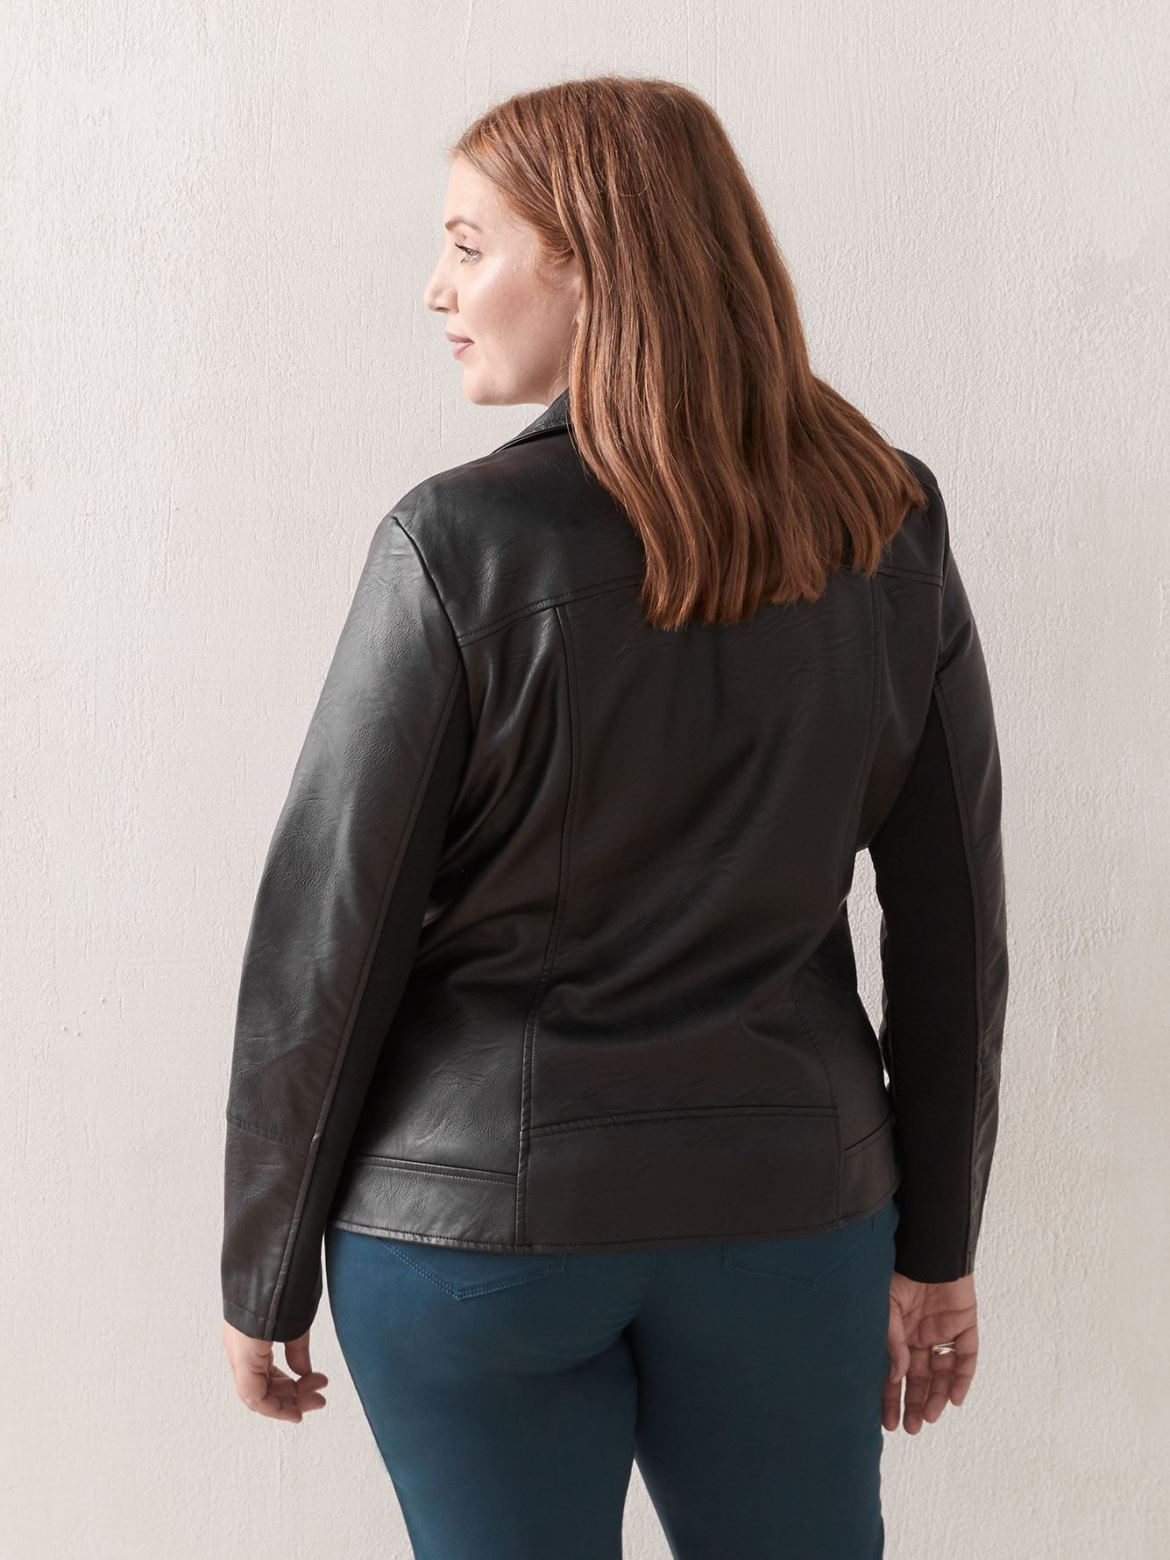 Short Faux-Leather Biker Jacket - In Every Story